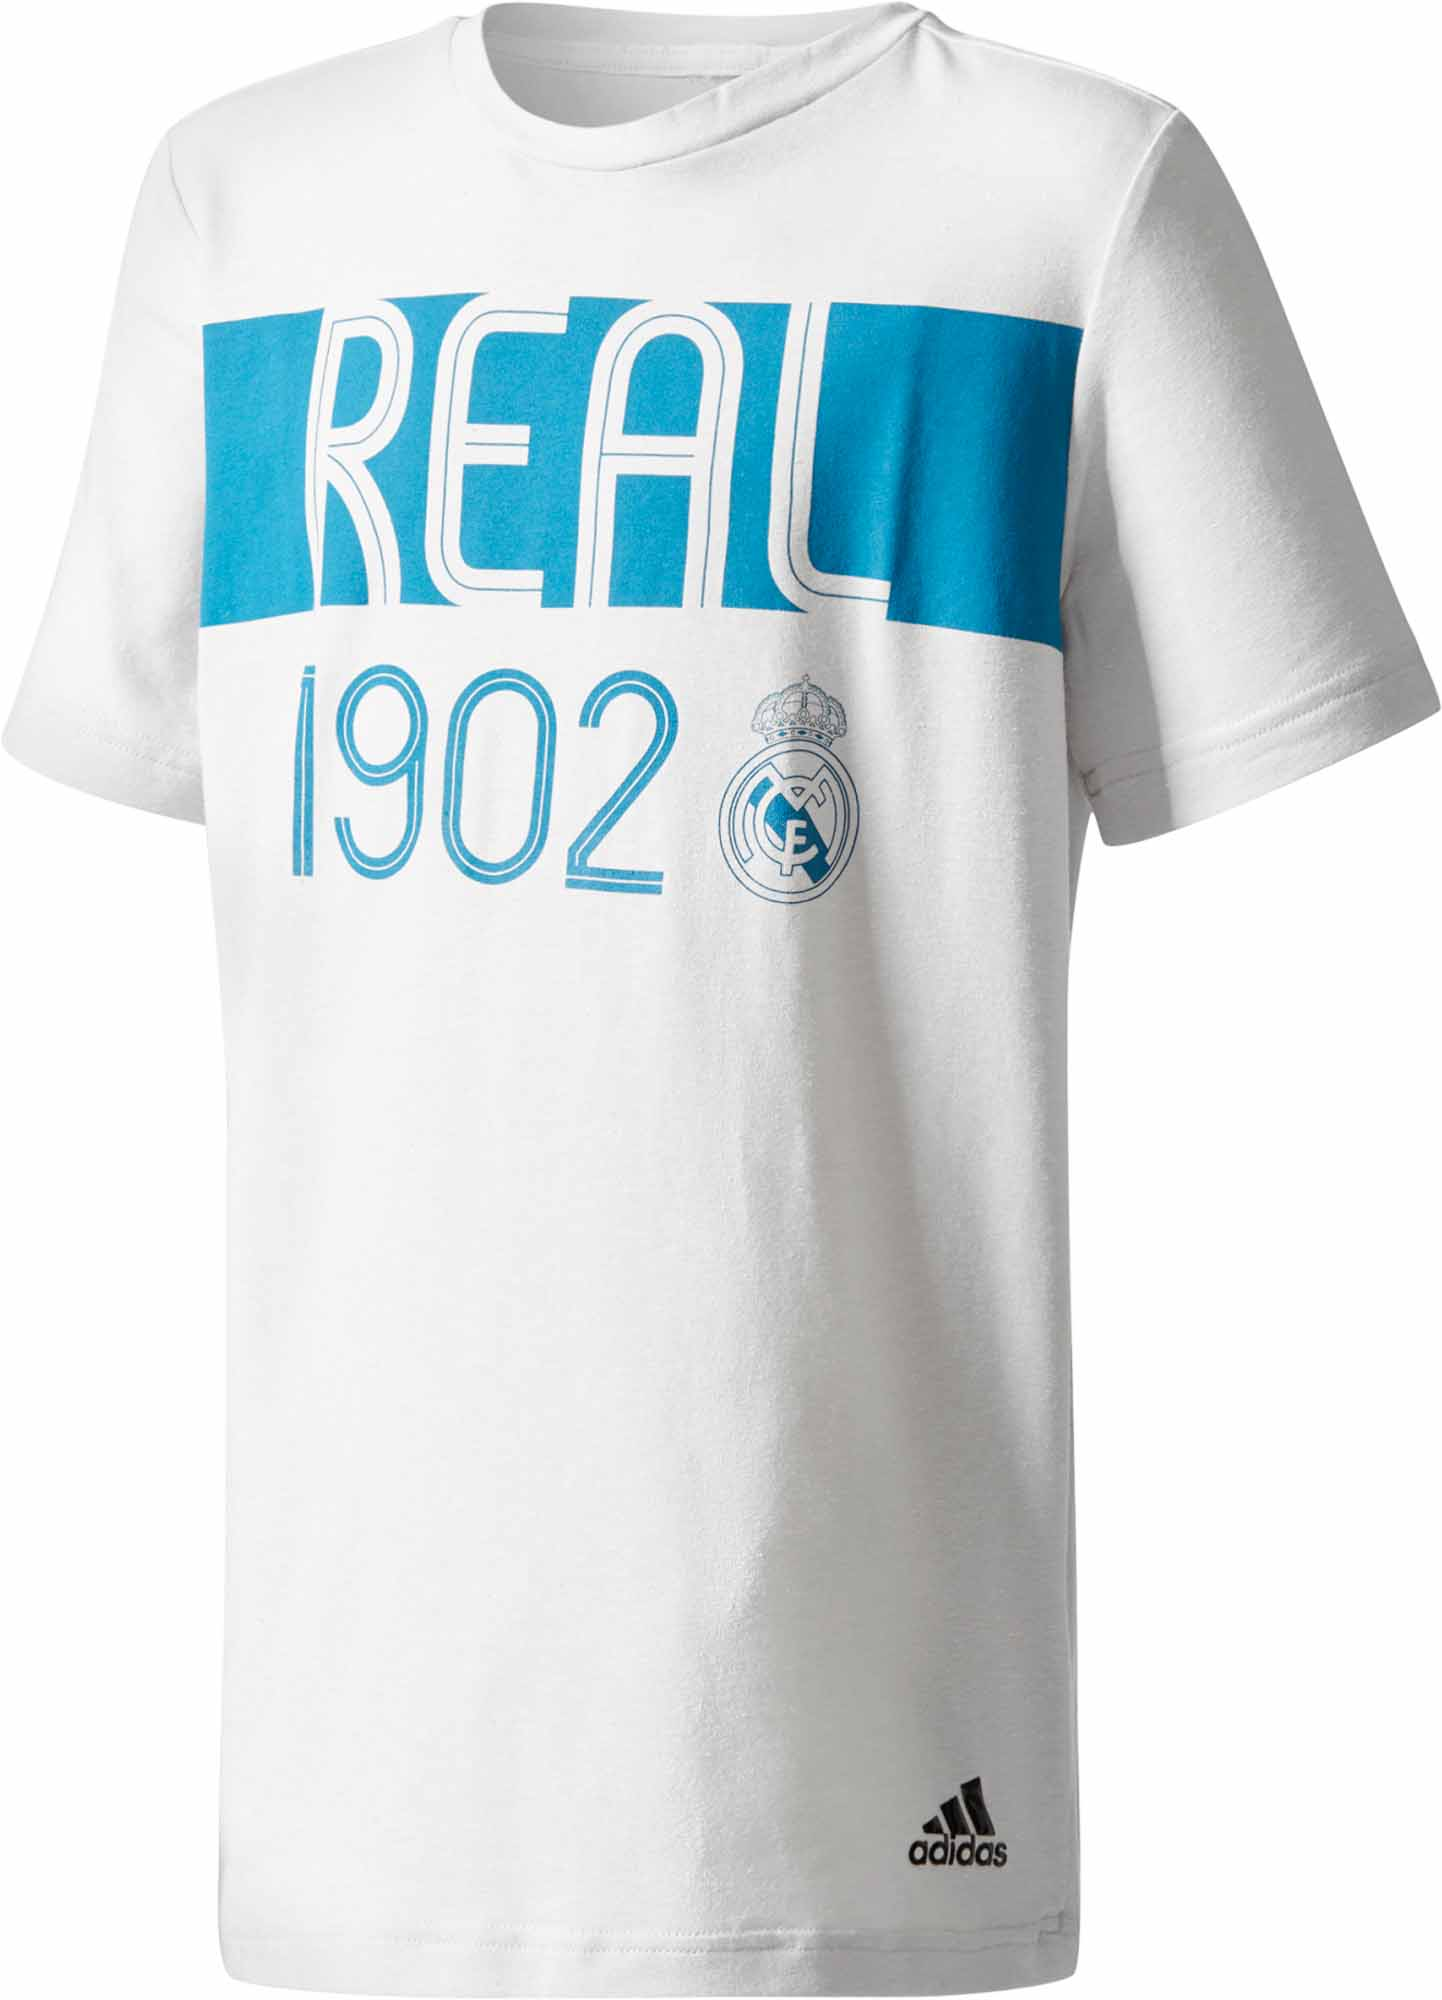 adidas kids real madrid tee real madrid youth t shirts. Black Bedroom Furniture Sets. Home Design Ideas